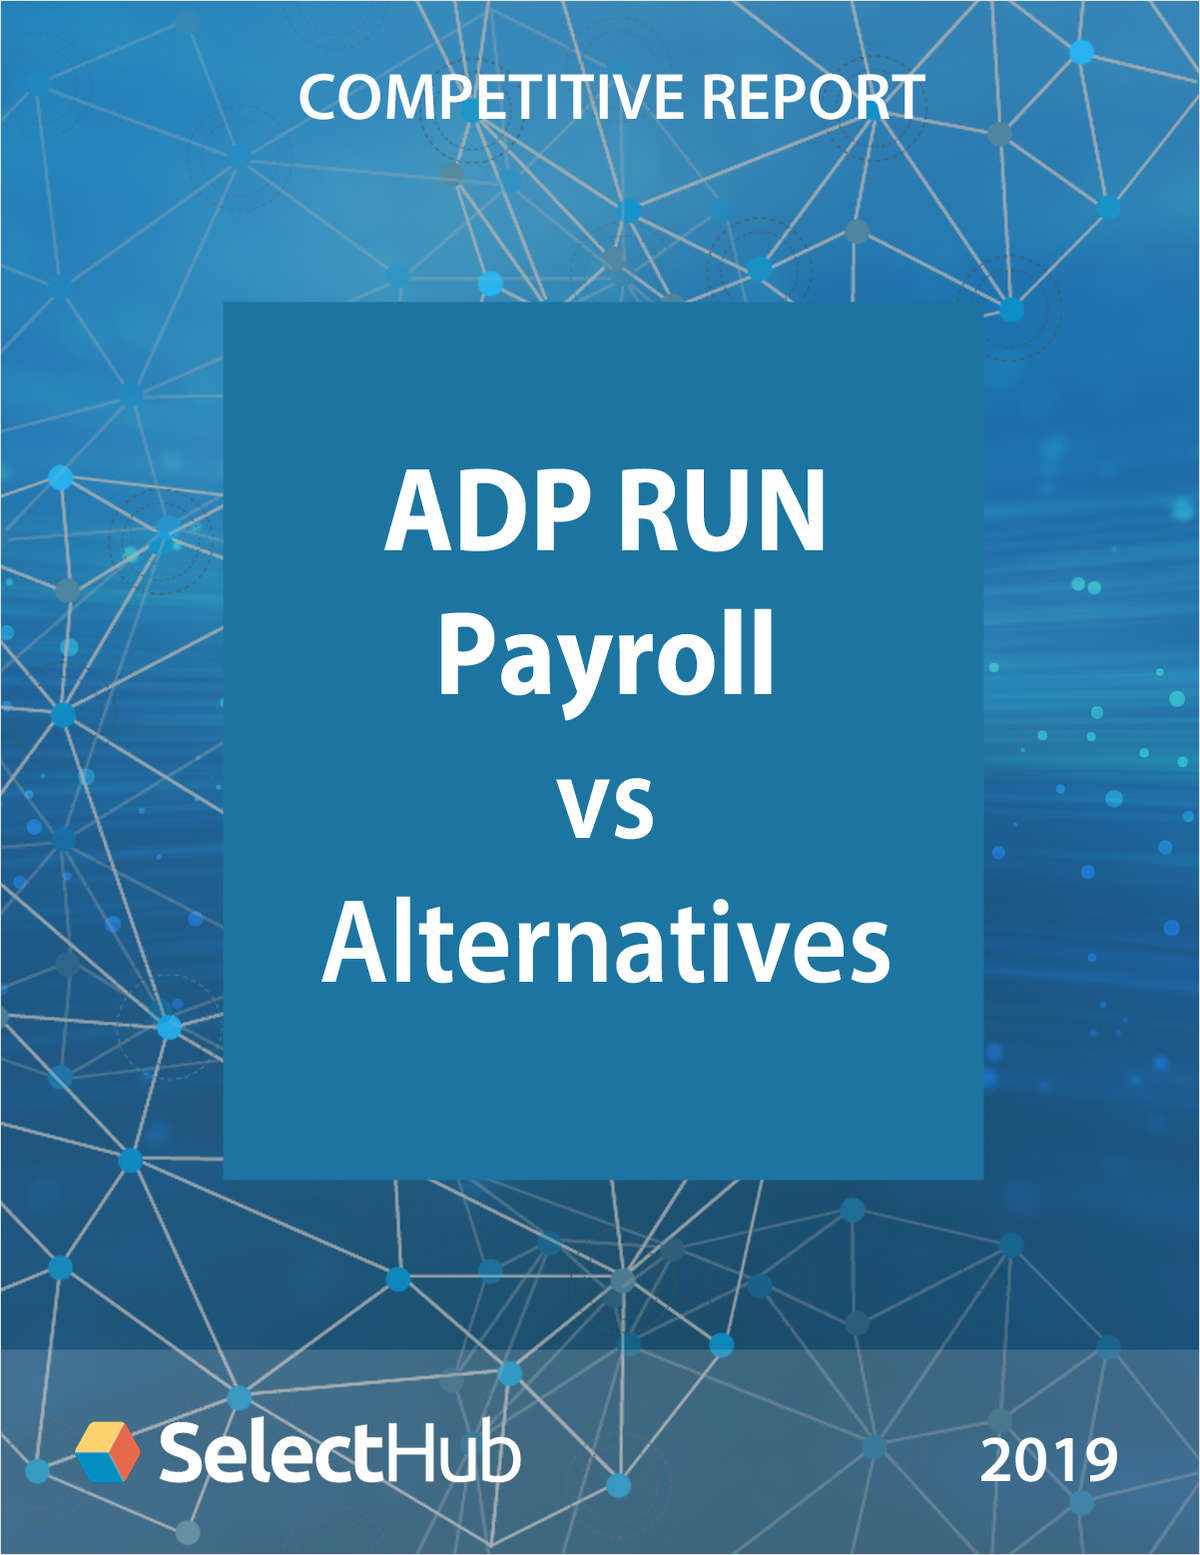 ADP RUN Payroll vs. Top Alternatives―Competitive Report